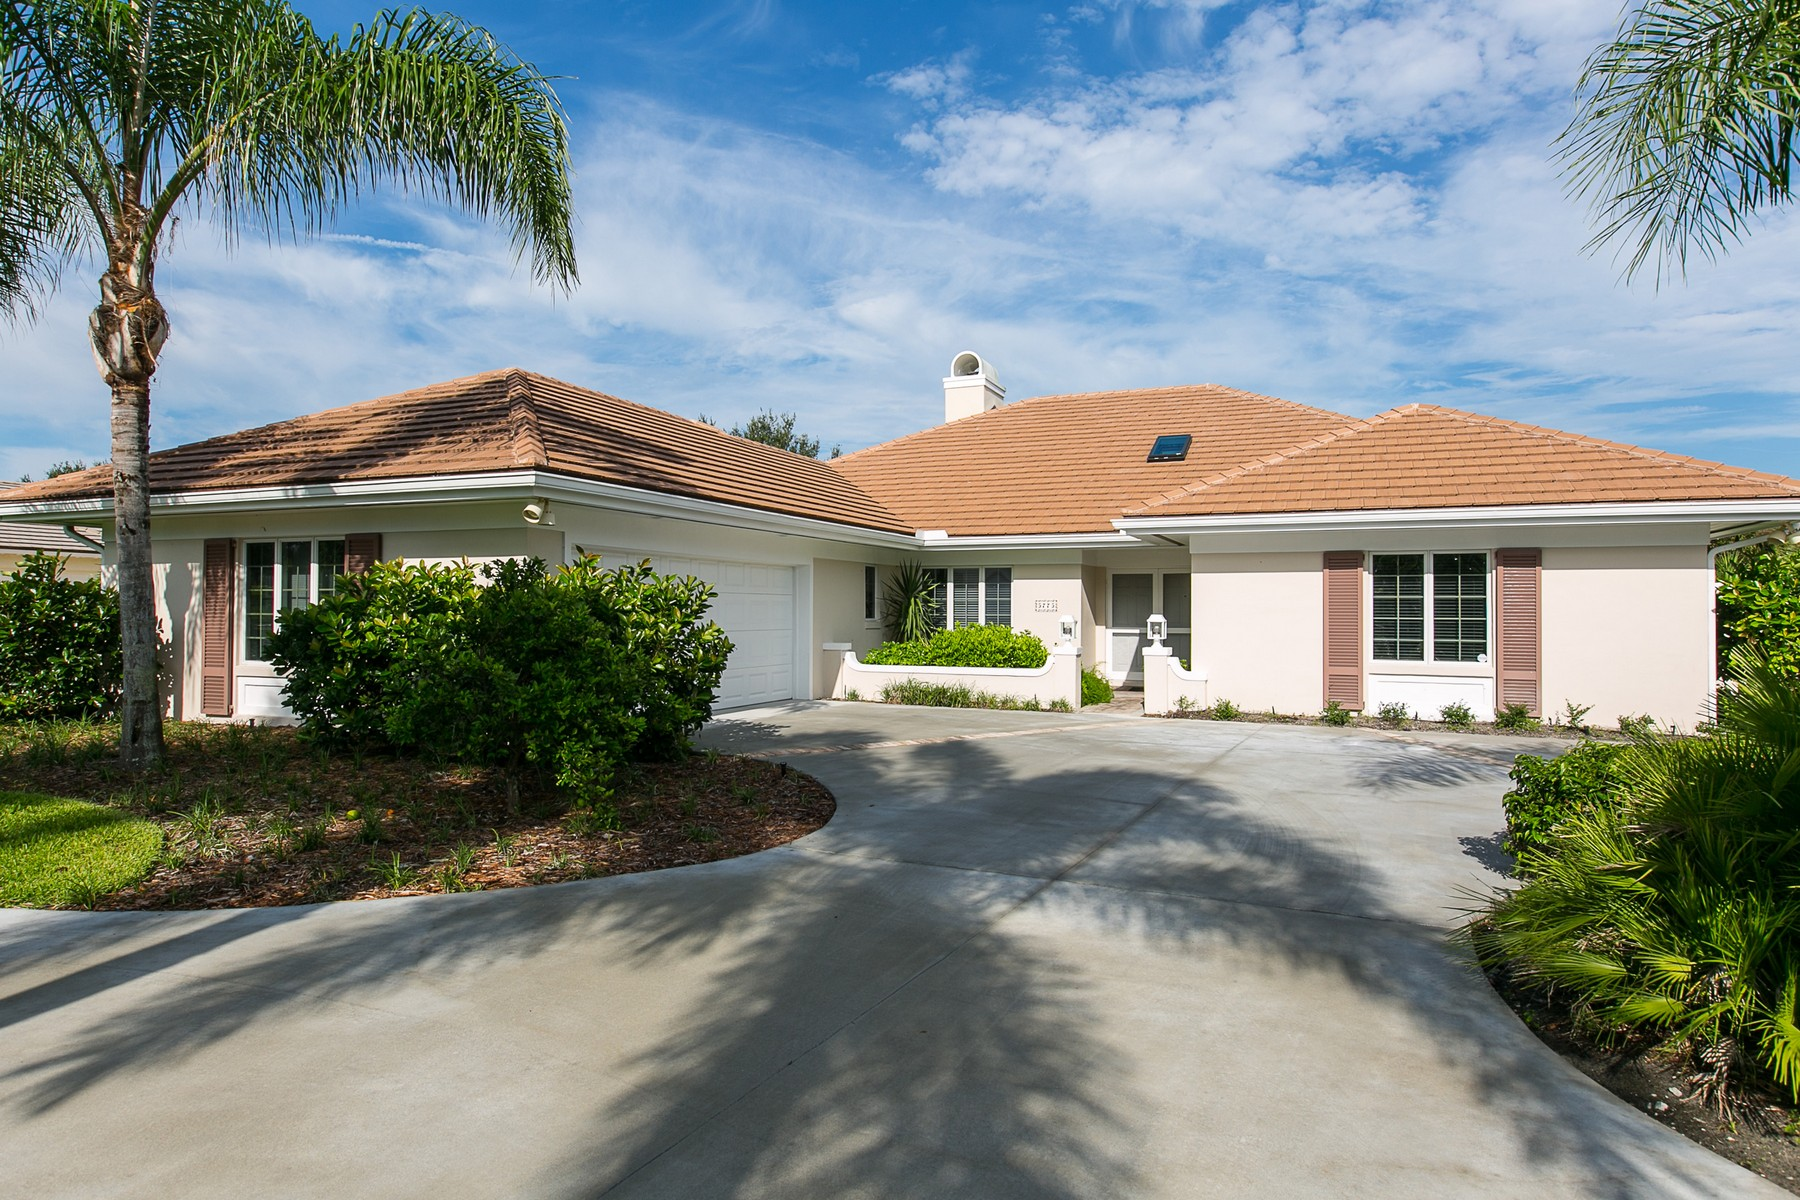 Villa per Vendita alle ore Beautiful Pool Home 5775 Glen Eagle Lane Vero Beach, Florida, 32967 Stati Uniti